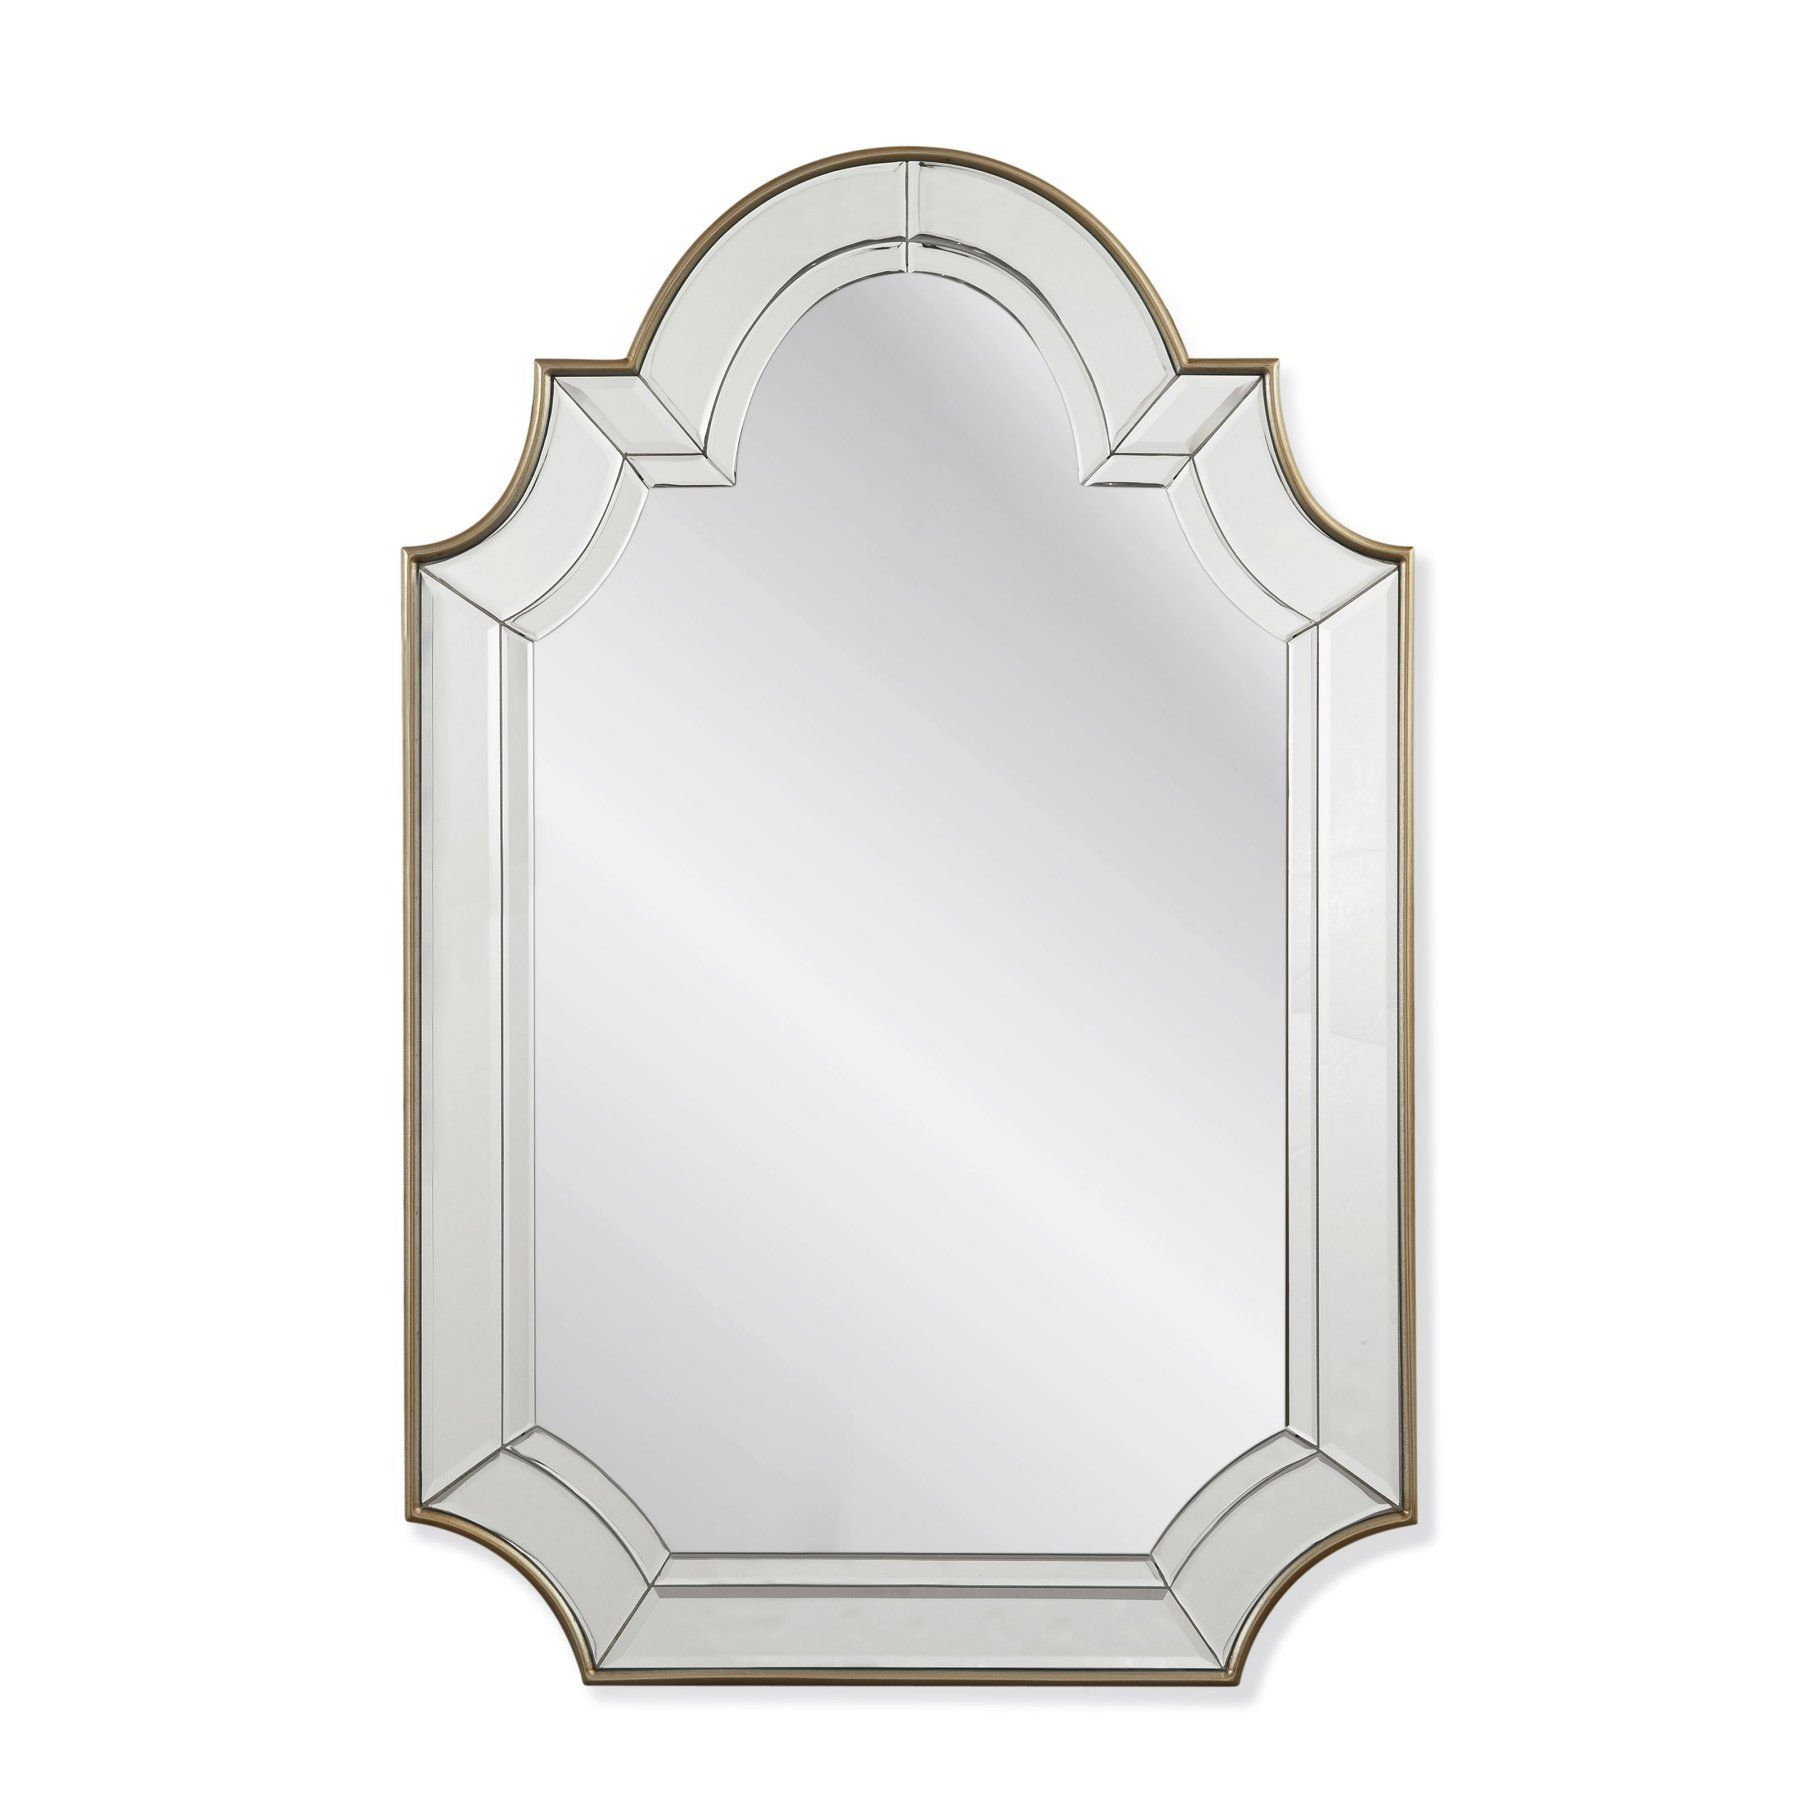 Widely Used Bassett Mirror Phaedra Wall Mirror – 30w X 46h In (View 8 of 20)